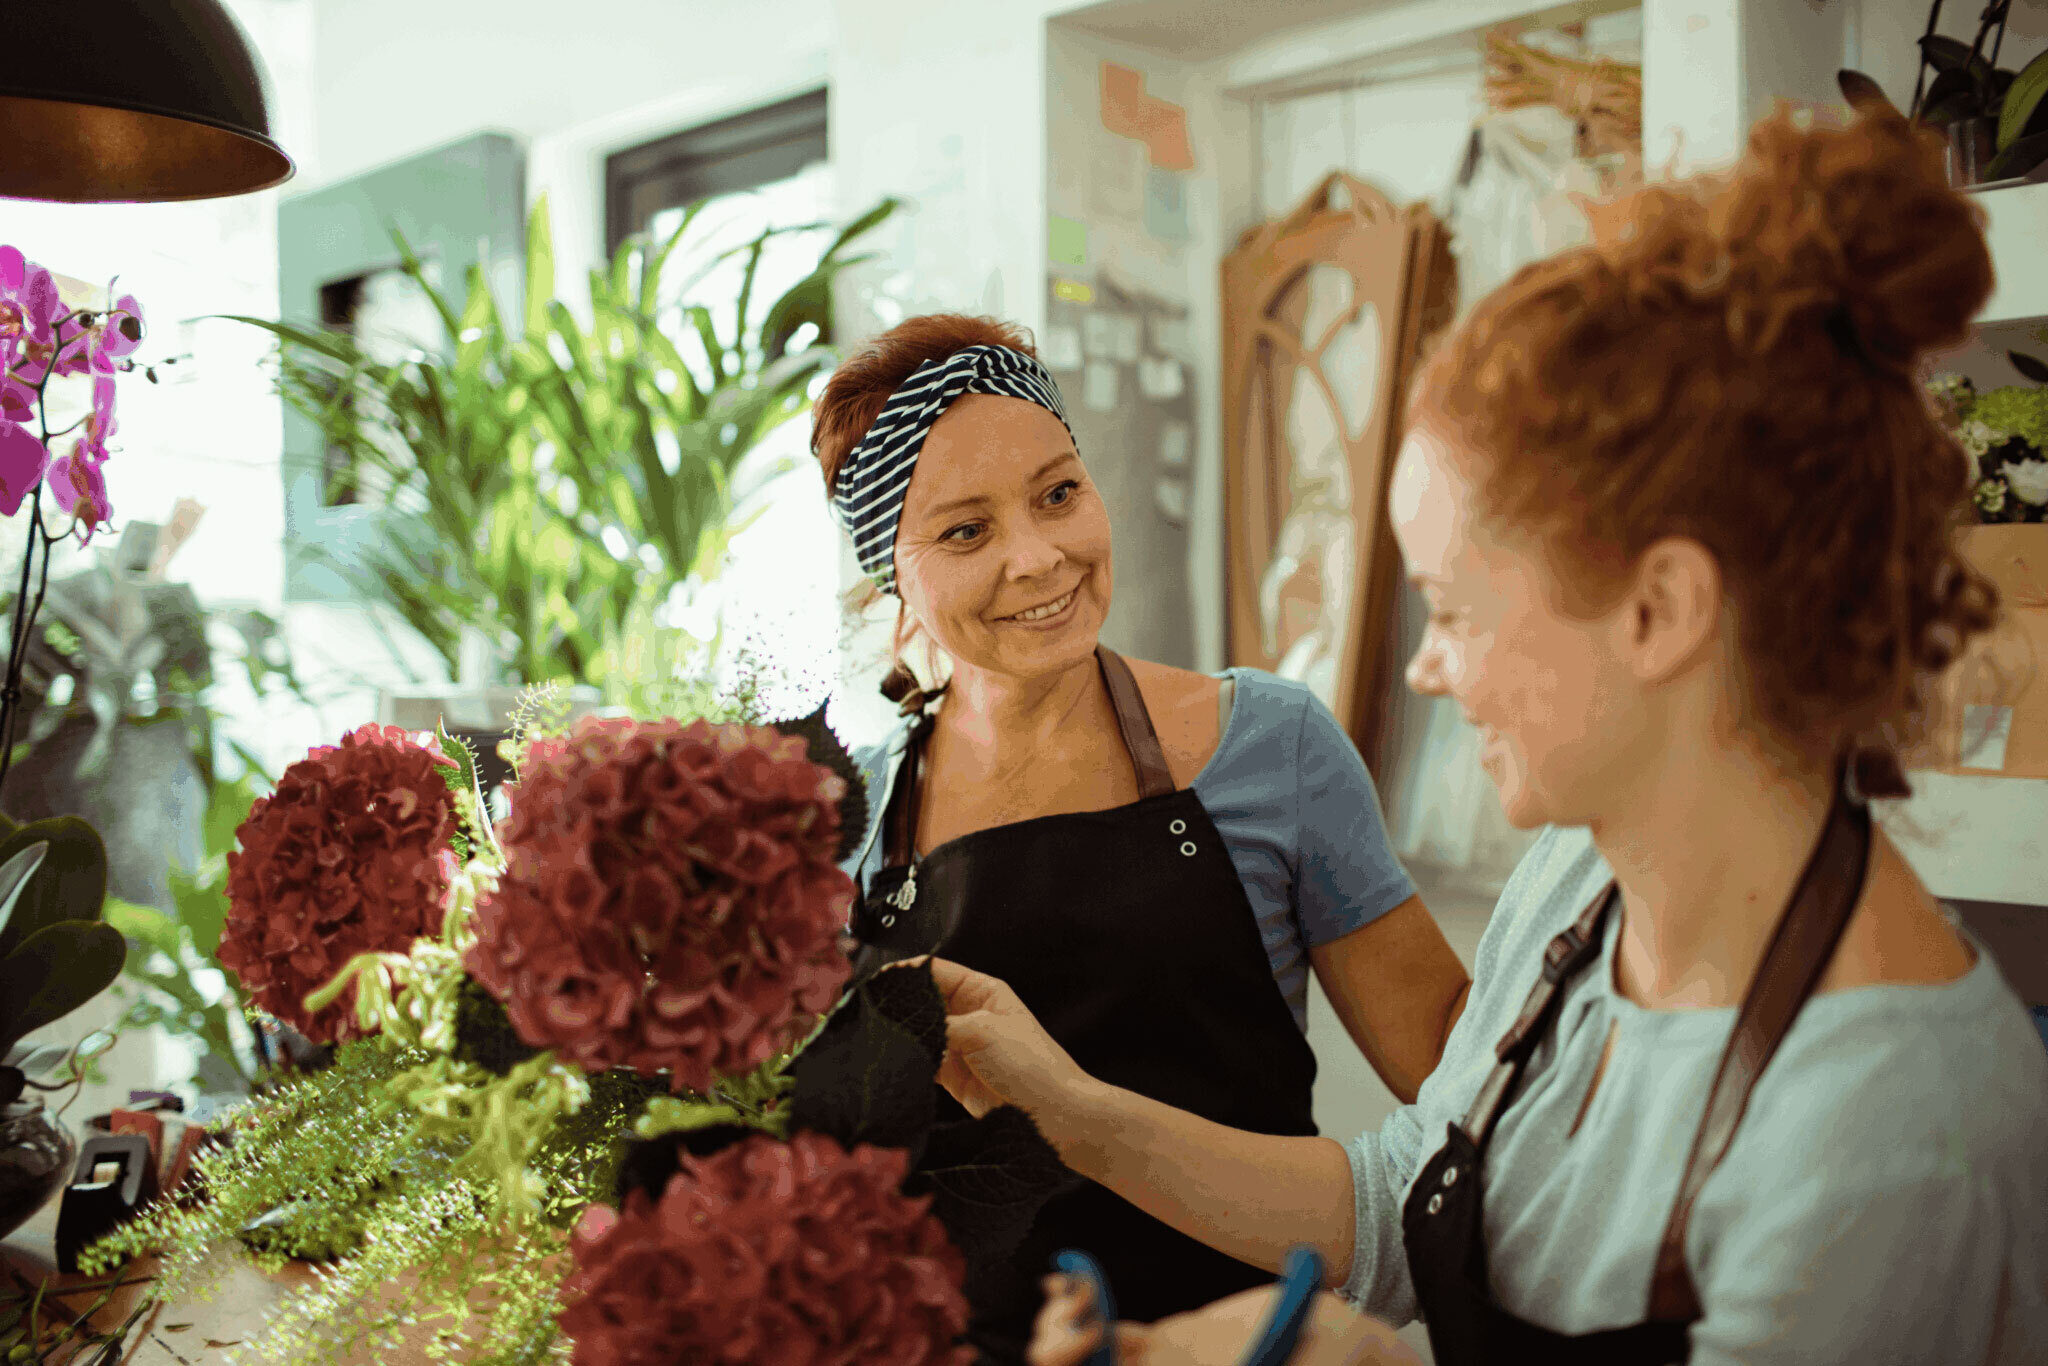 Two women working at a flower shop